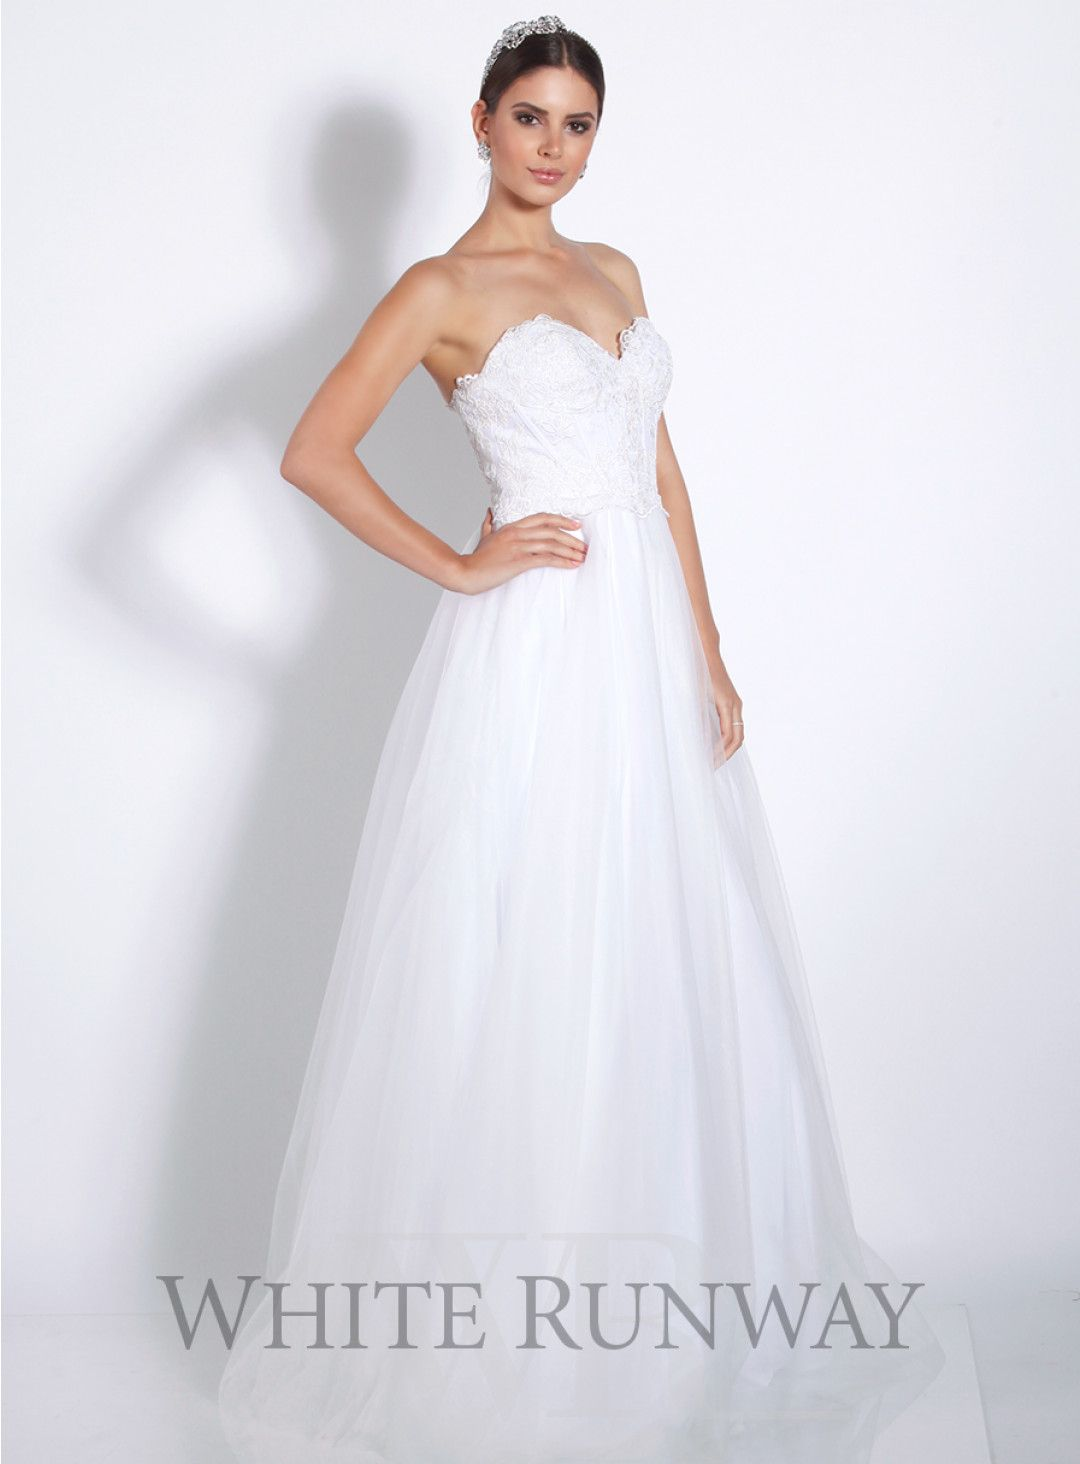 Cynthia dress a beautiful gown by jadore a strapless style